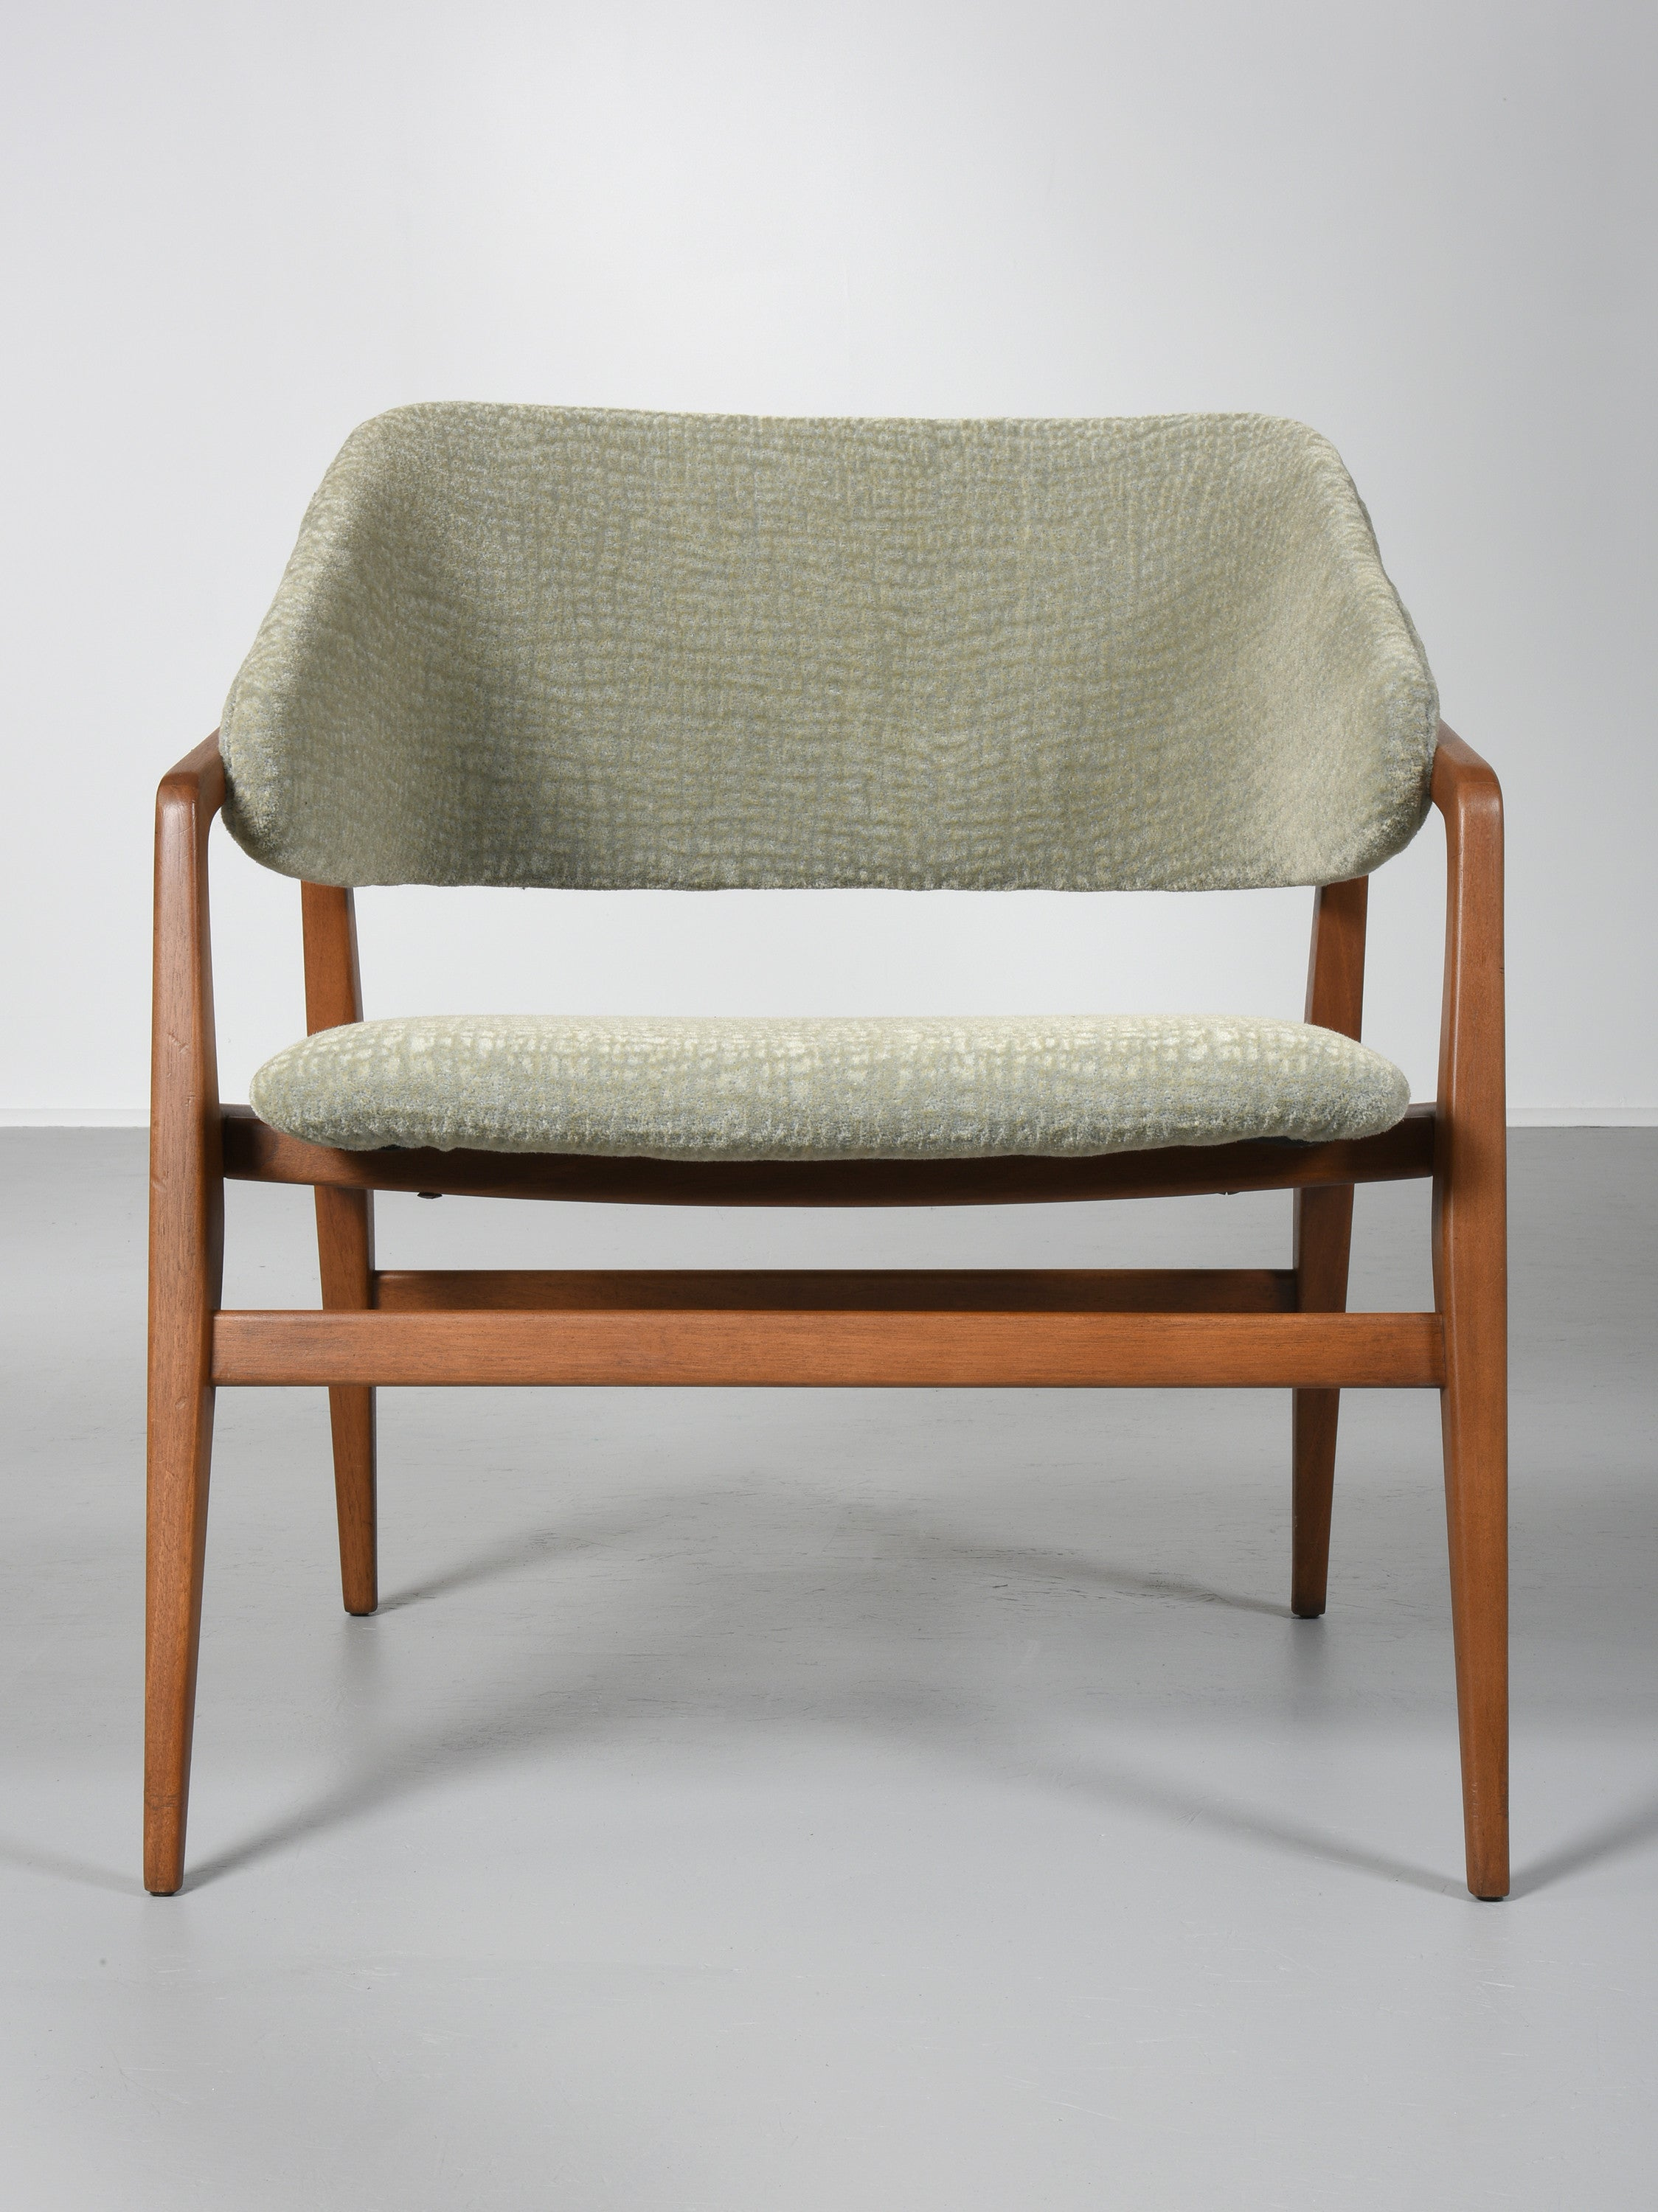 Gio Ponti Lounge Chair, 1950s - The Exchange Int